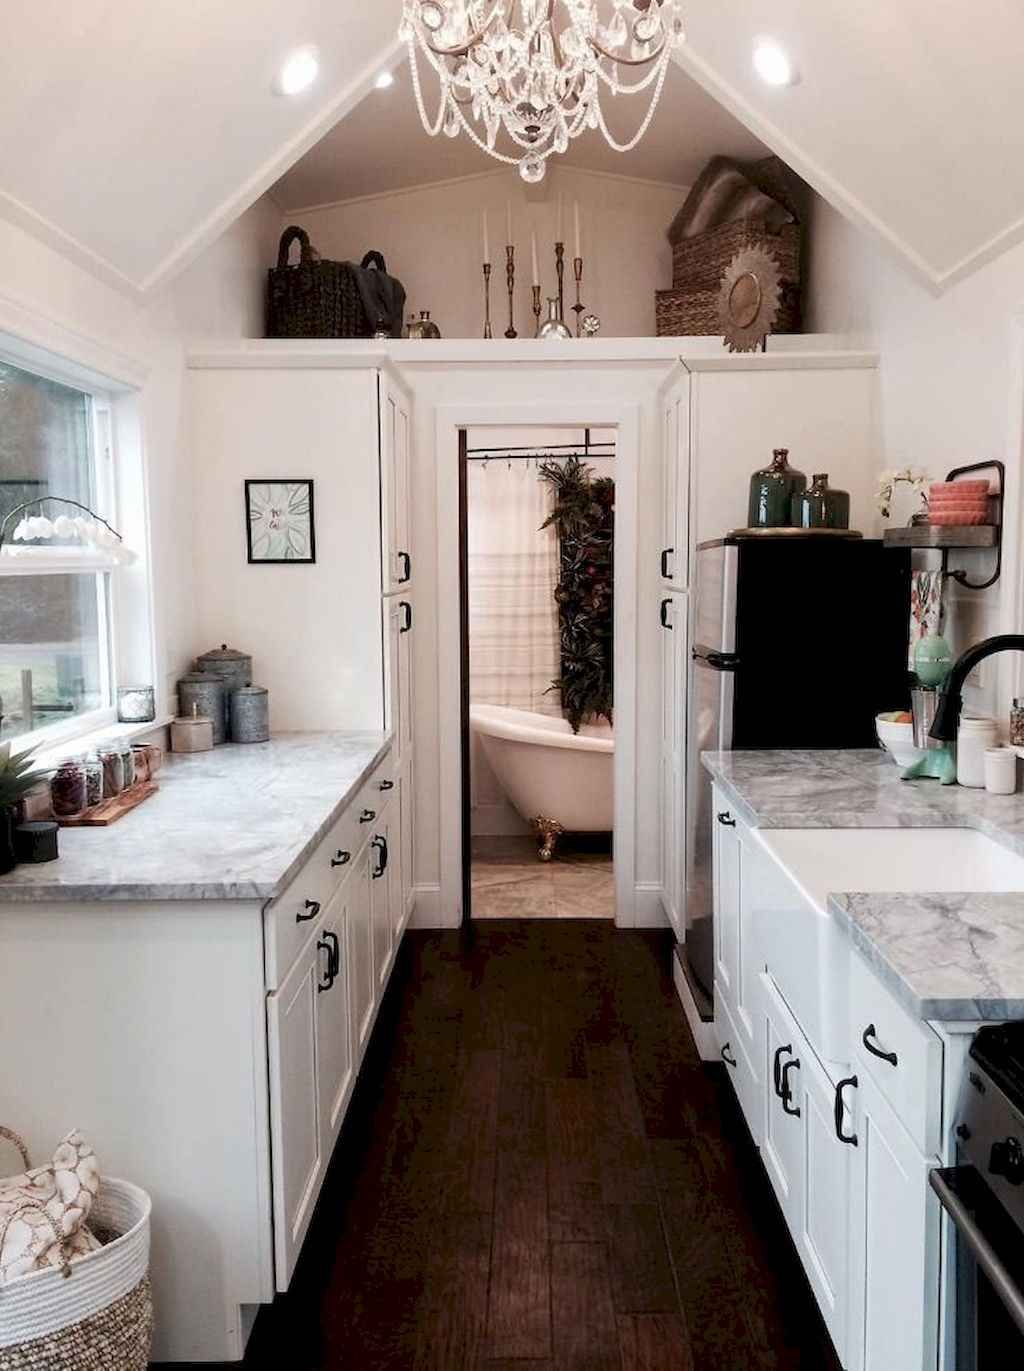 55 Tiny House Bathroom Remodel Ideas #tinyhousekitchens